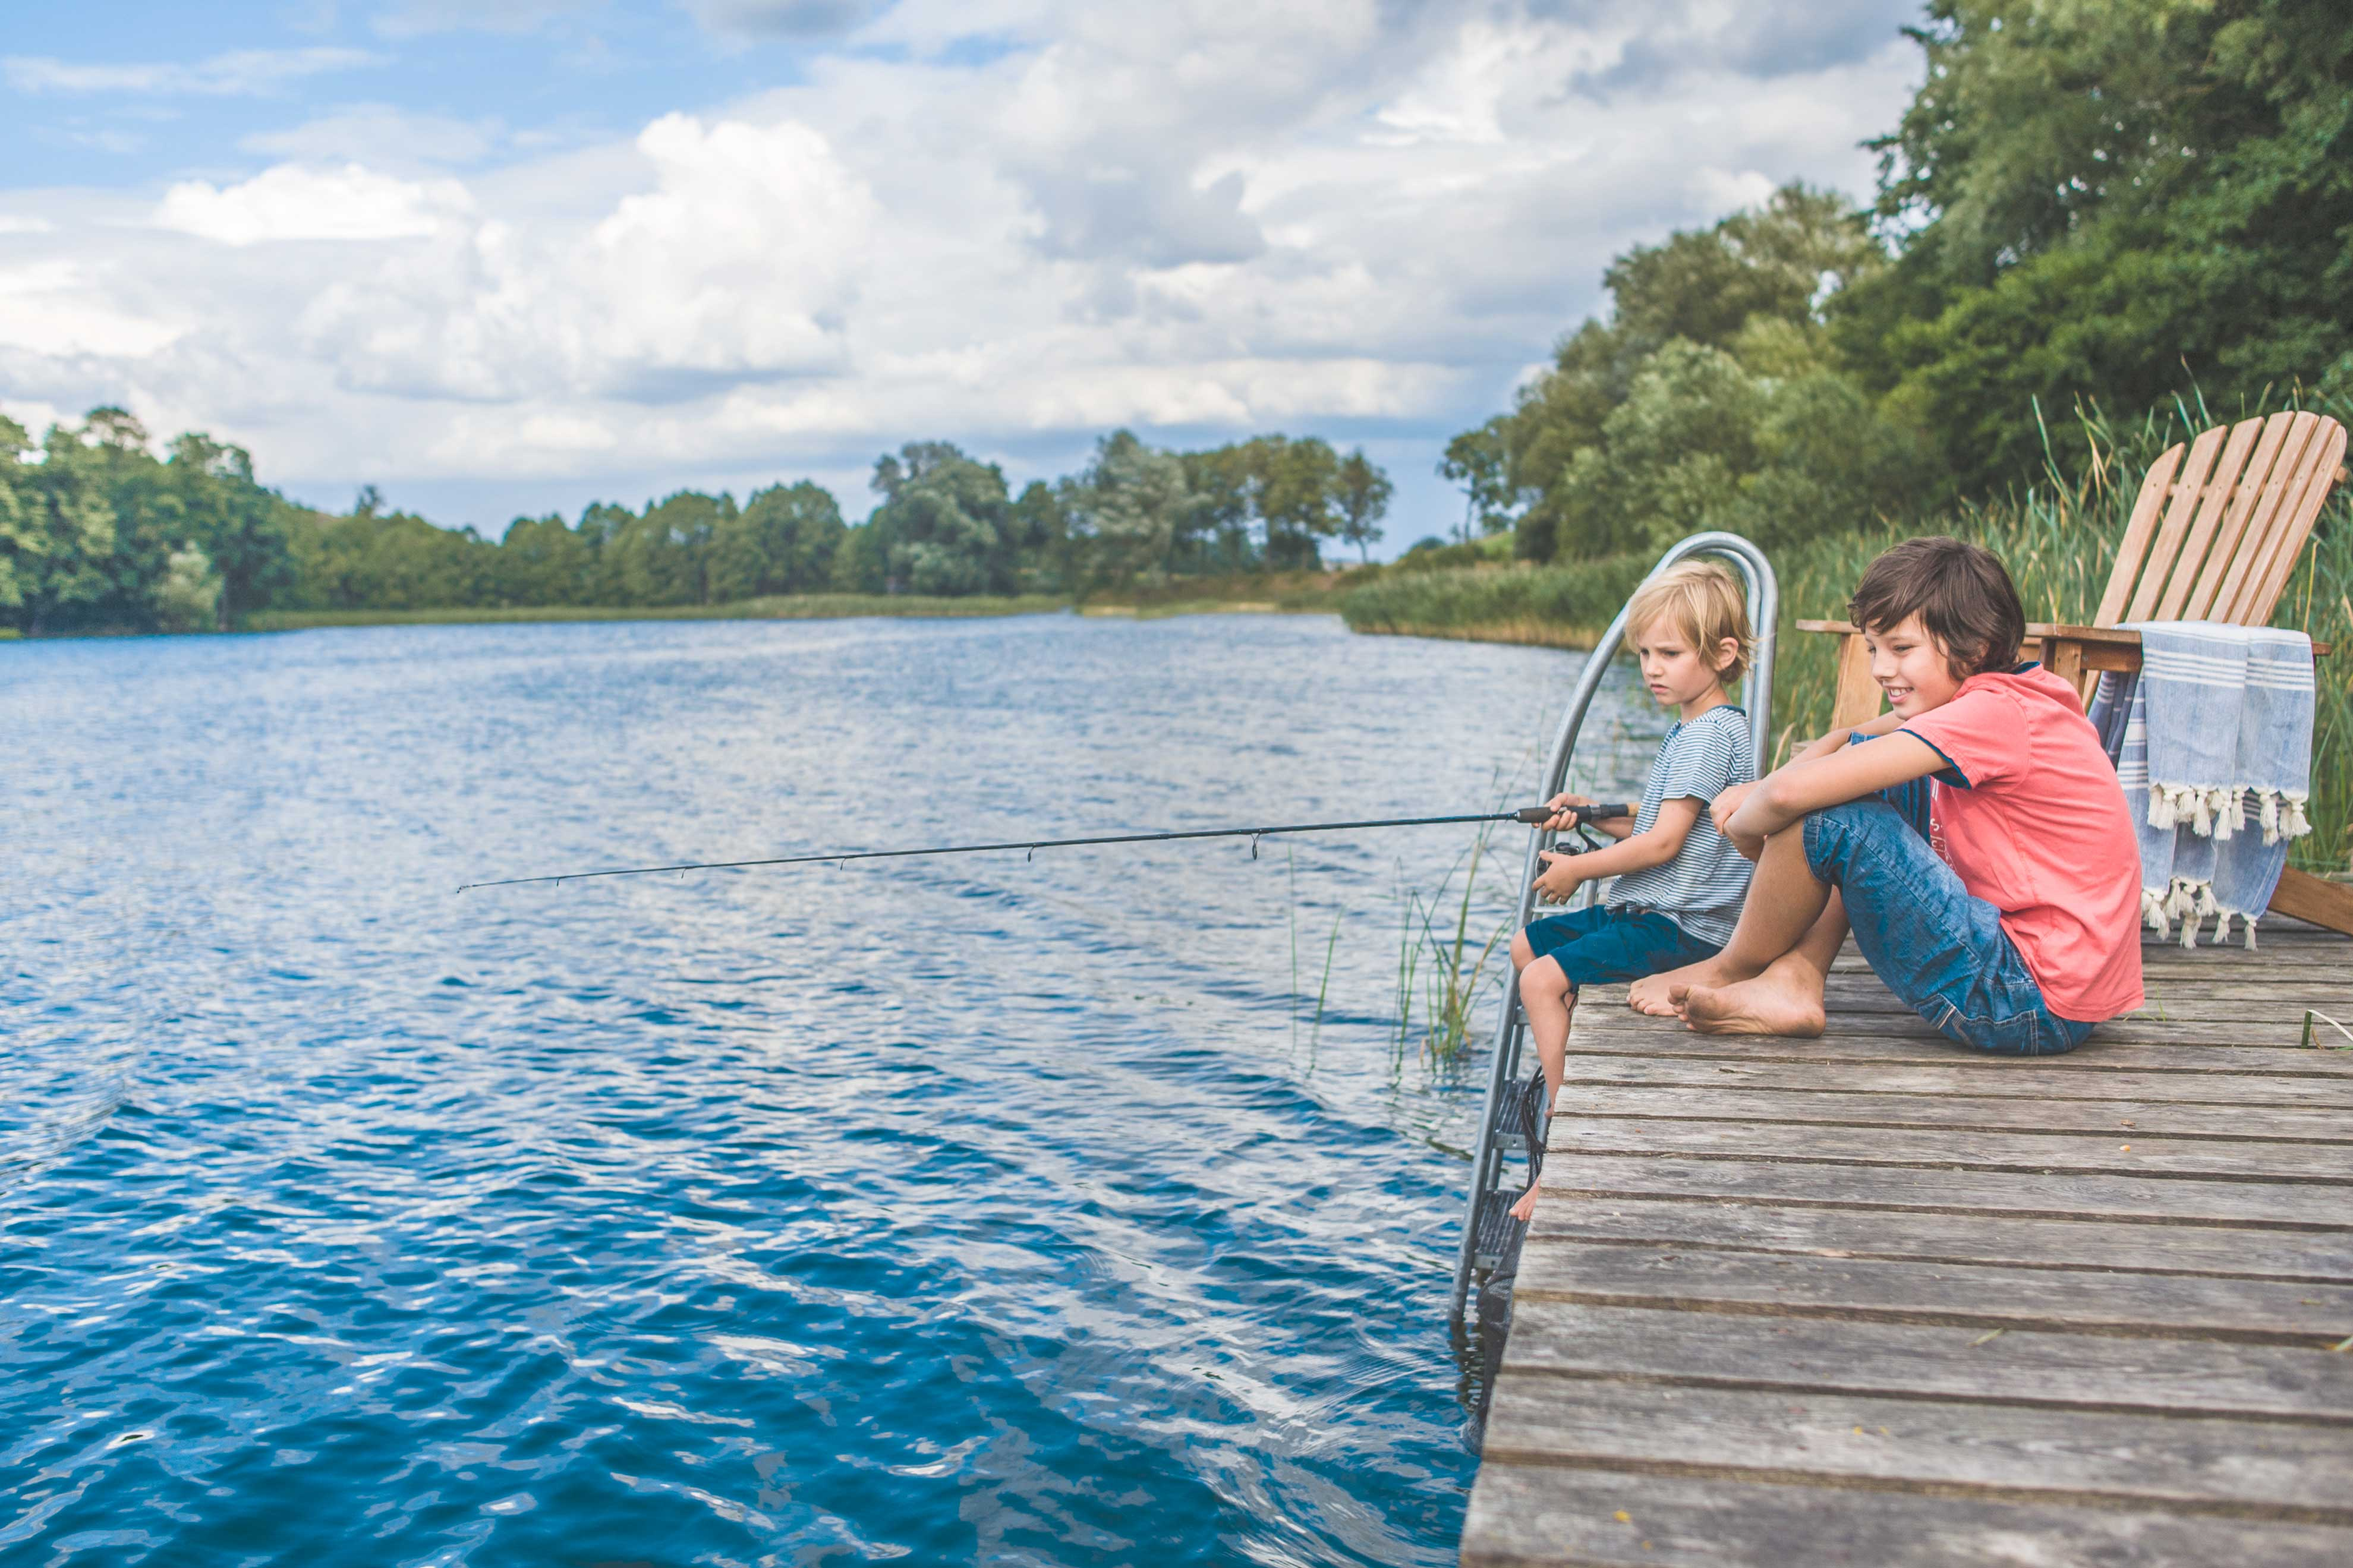 Blue Lakehouse, 50 m od jeziora - What's there for children?